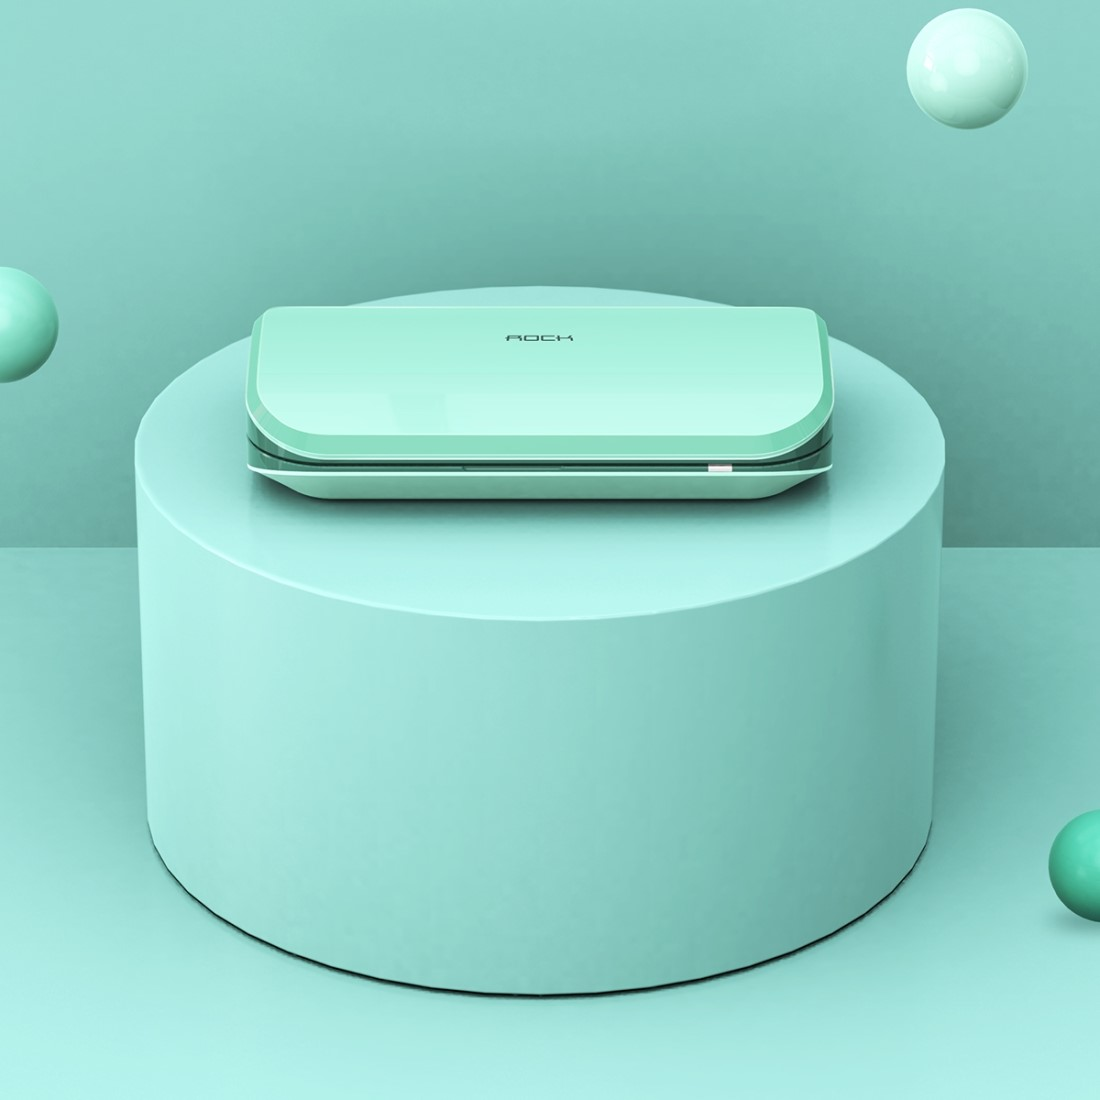 Where Can I Purchase The Smartsanitizer Pro